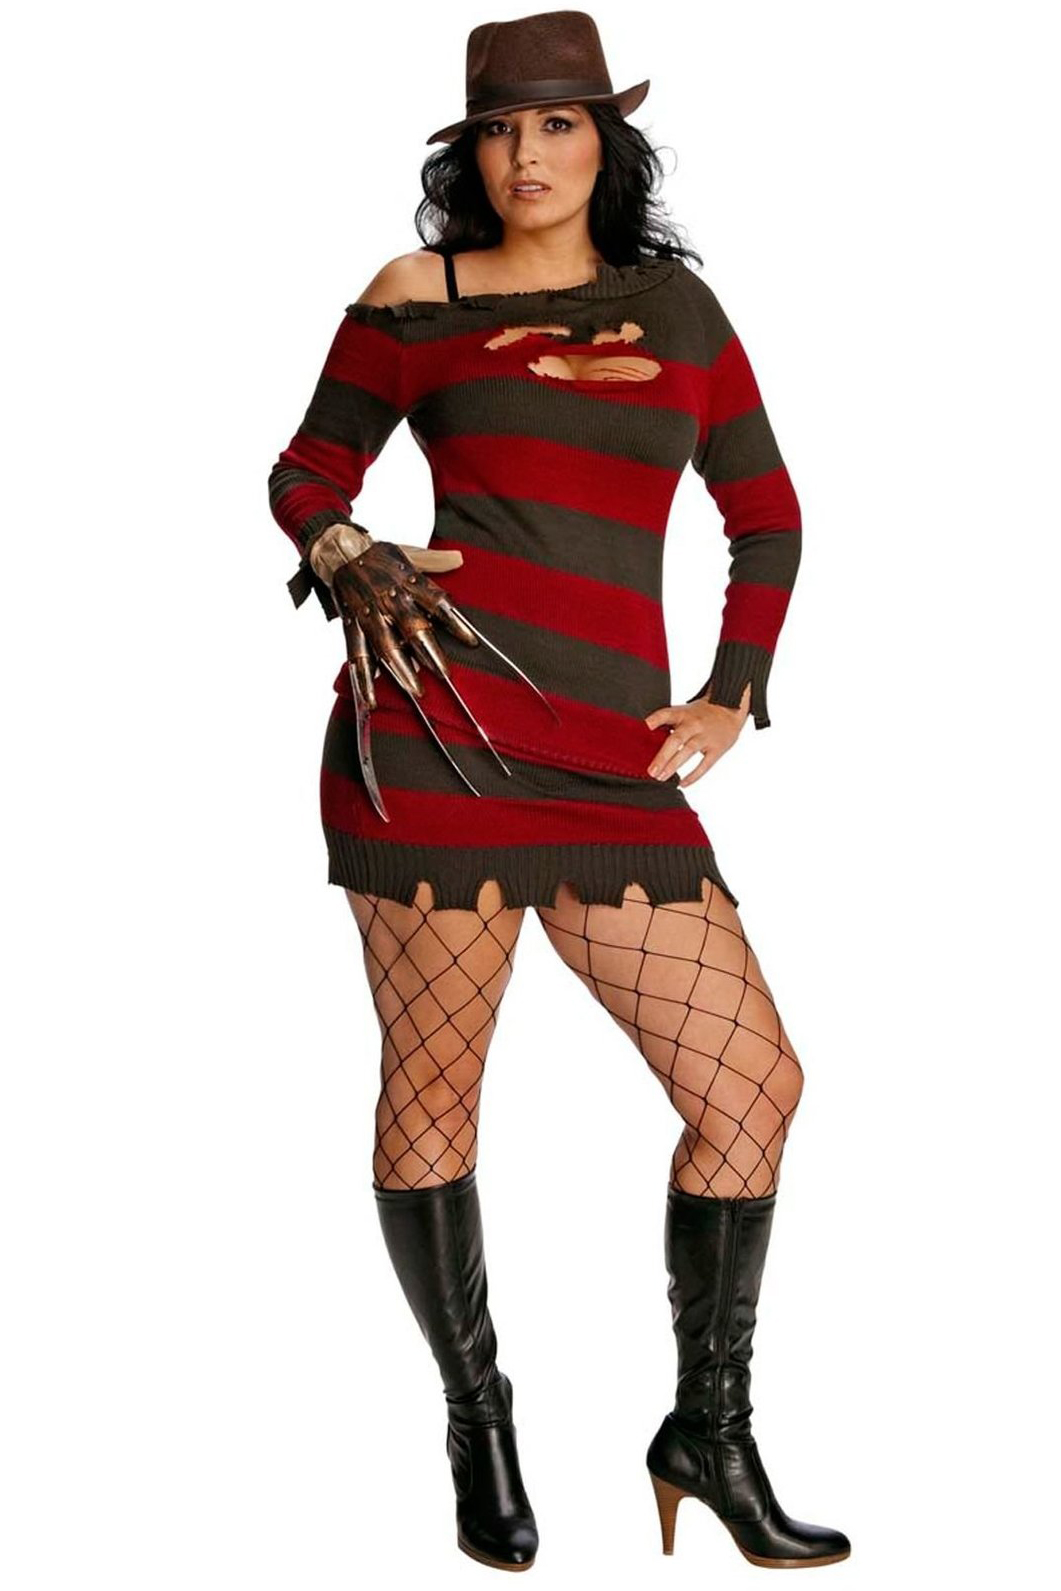 20 Funny Sexy Halloween Costume Ideas 2017 - Sexiest Men's and ...